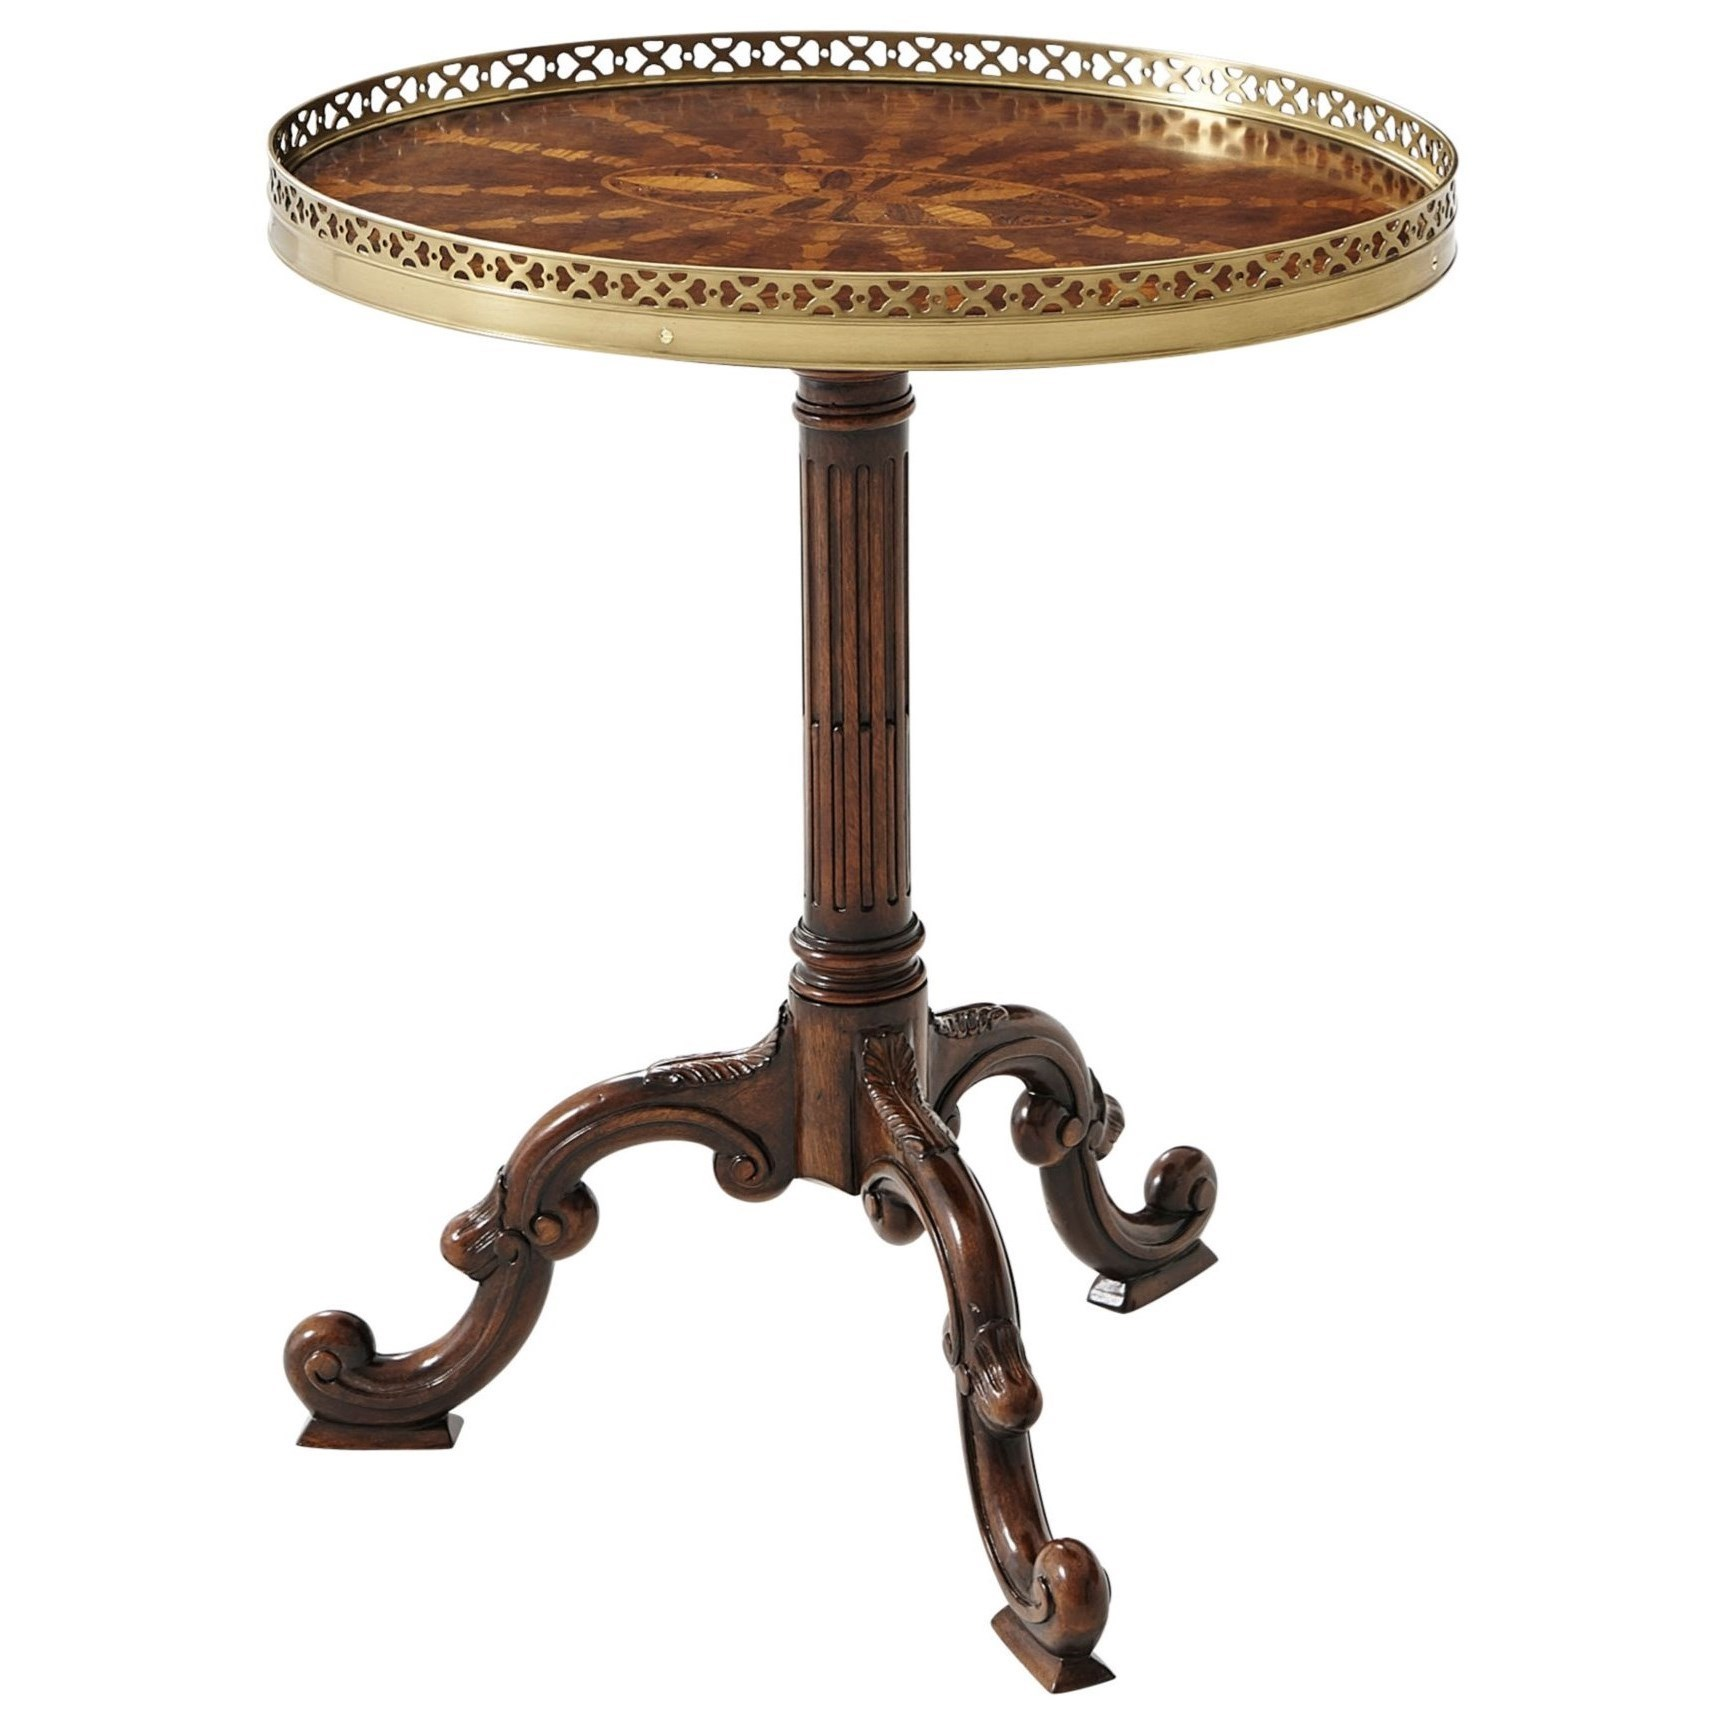 Theodore Alexander Essential TA Radiating Parquetry Lamp Table - Item Number: 5005-022